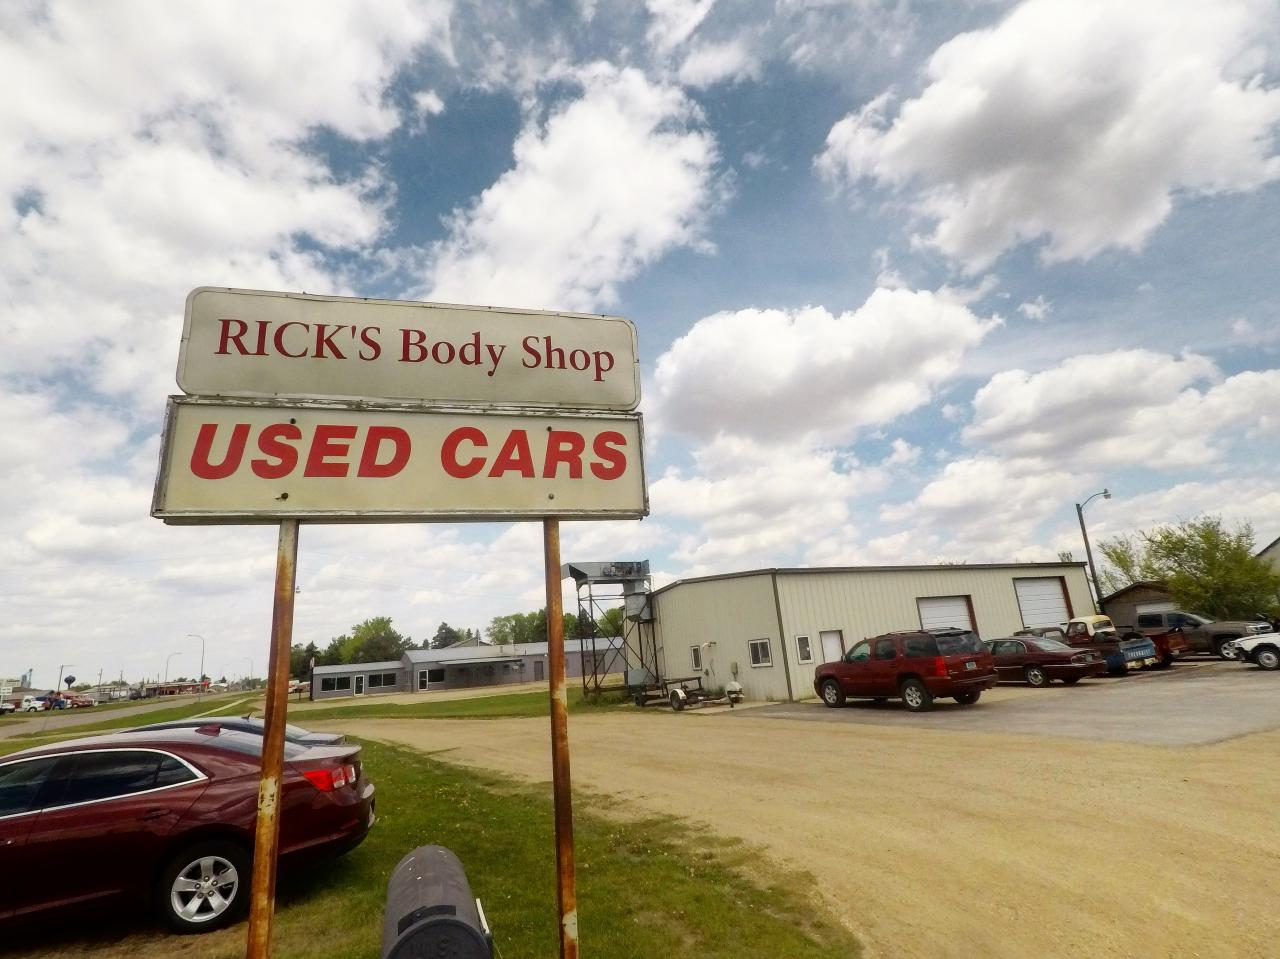 Rick's Body Shop